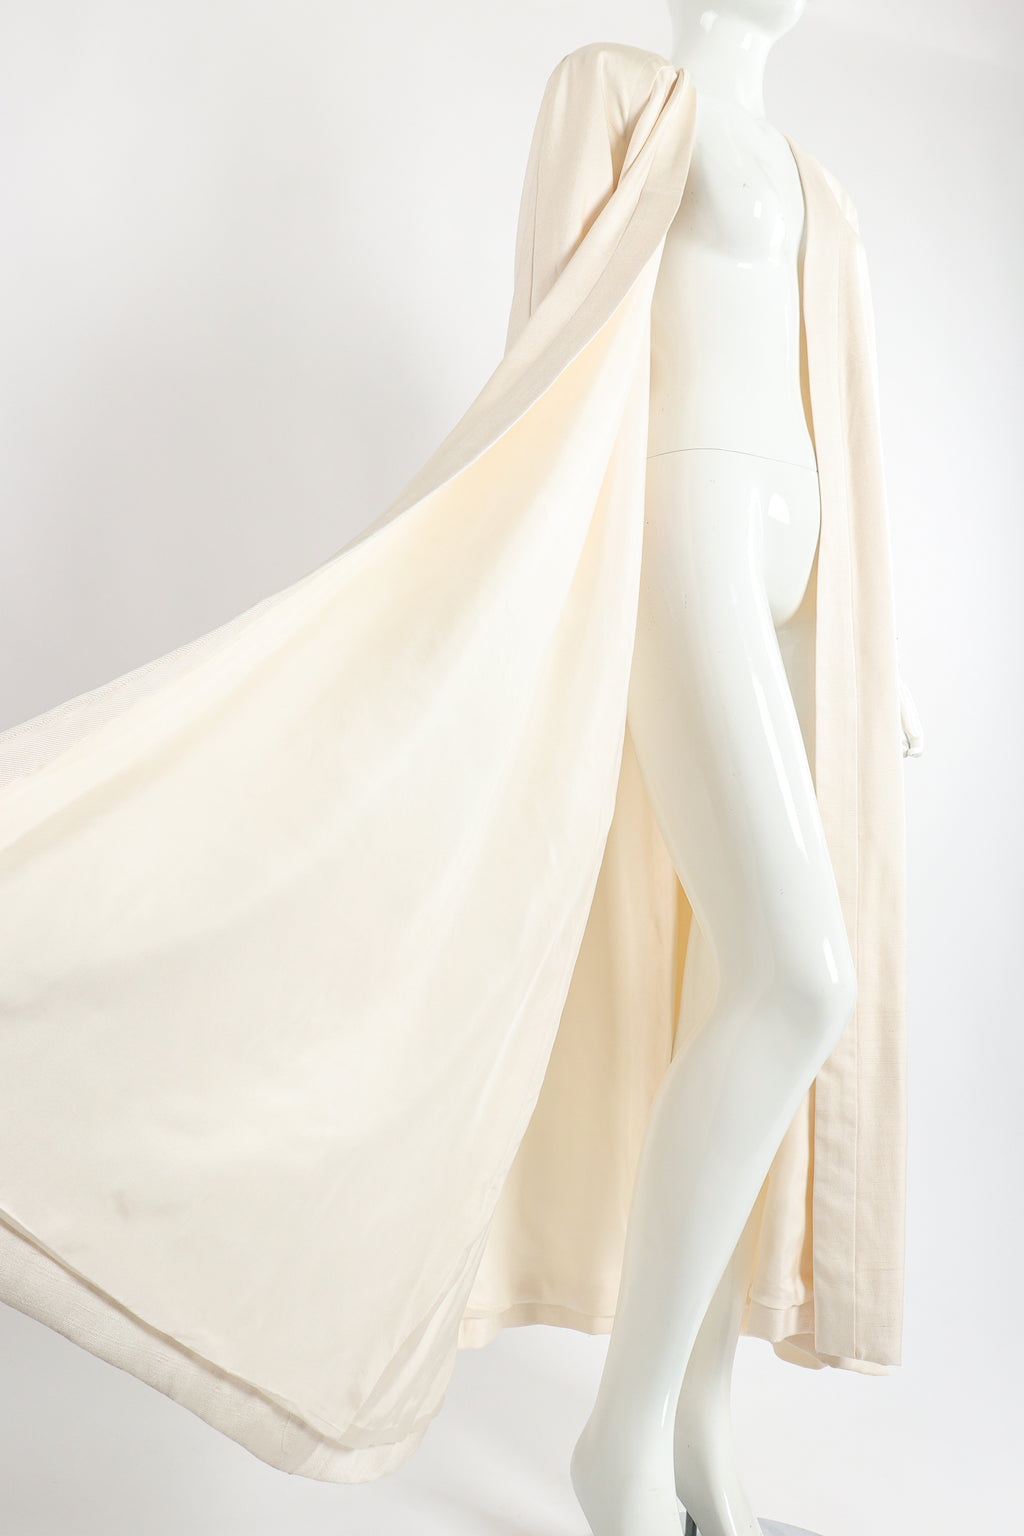 Vintage Peggy Jennings Saks Fifth Ave Bridal Wedding Silk Opera Coat on Mannequin Sweep at Recess